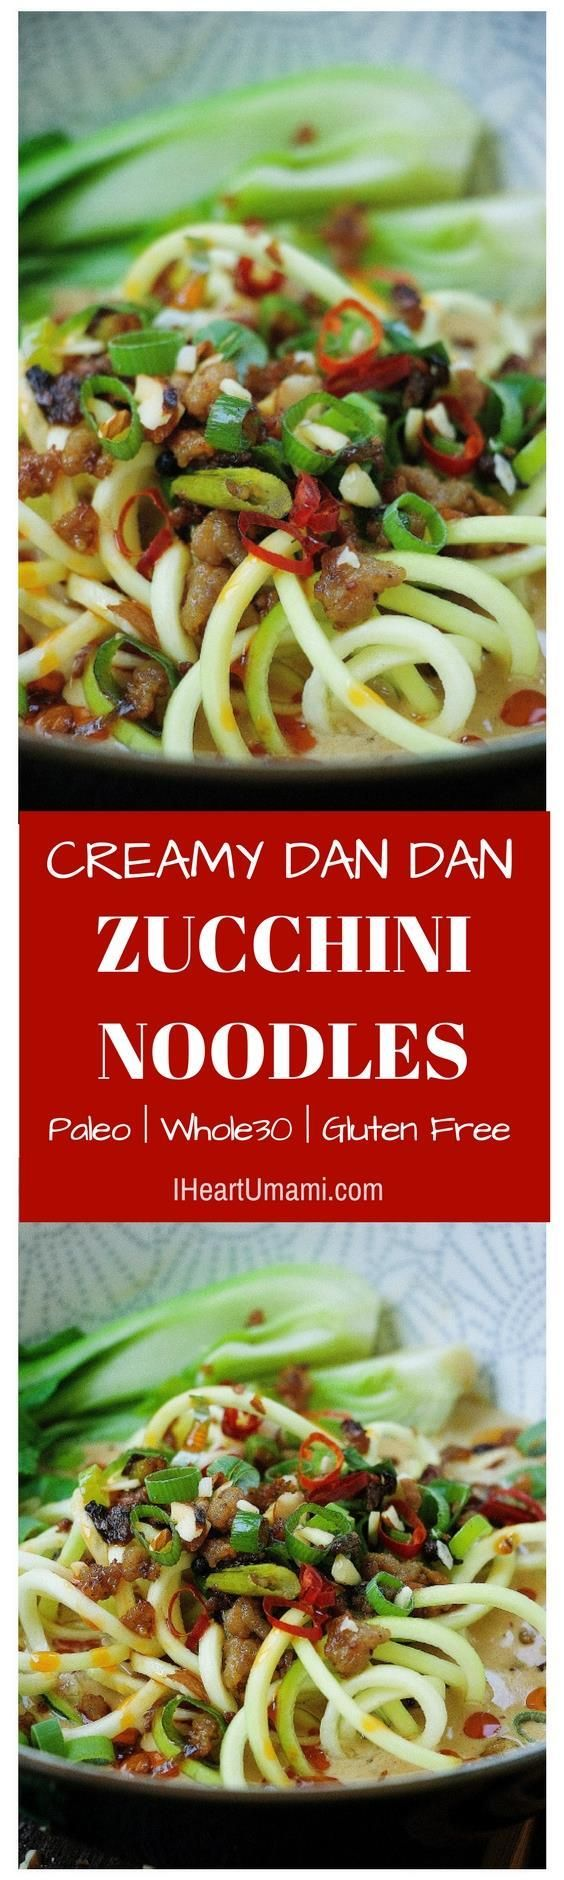 Easy and healthy Paleo Dan Dan Noodles in creamy sesame sauce with added crispy pork crumbles and  blanched bok choy vegetables to satisfy your cravings and keep your tummy happy and healthy. Follow the link to get creamy delicious noodle bowl ! IHeartUmami.com via @iheartumami